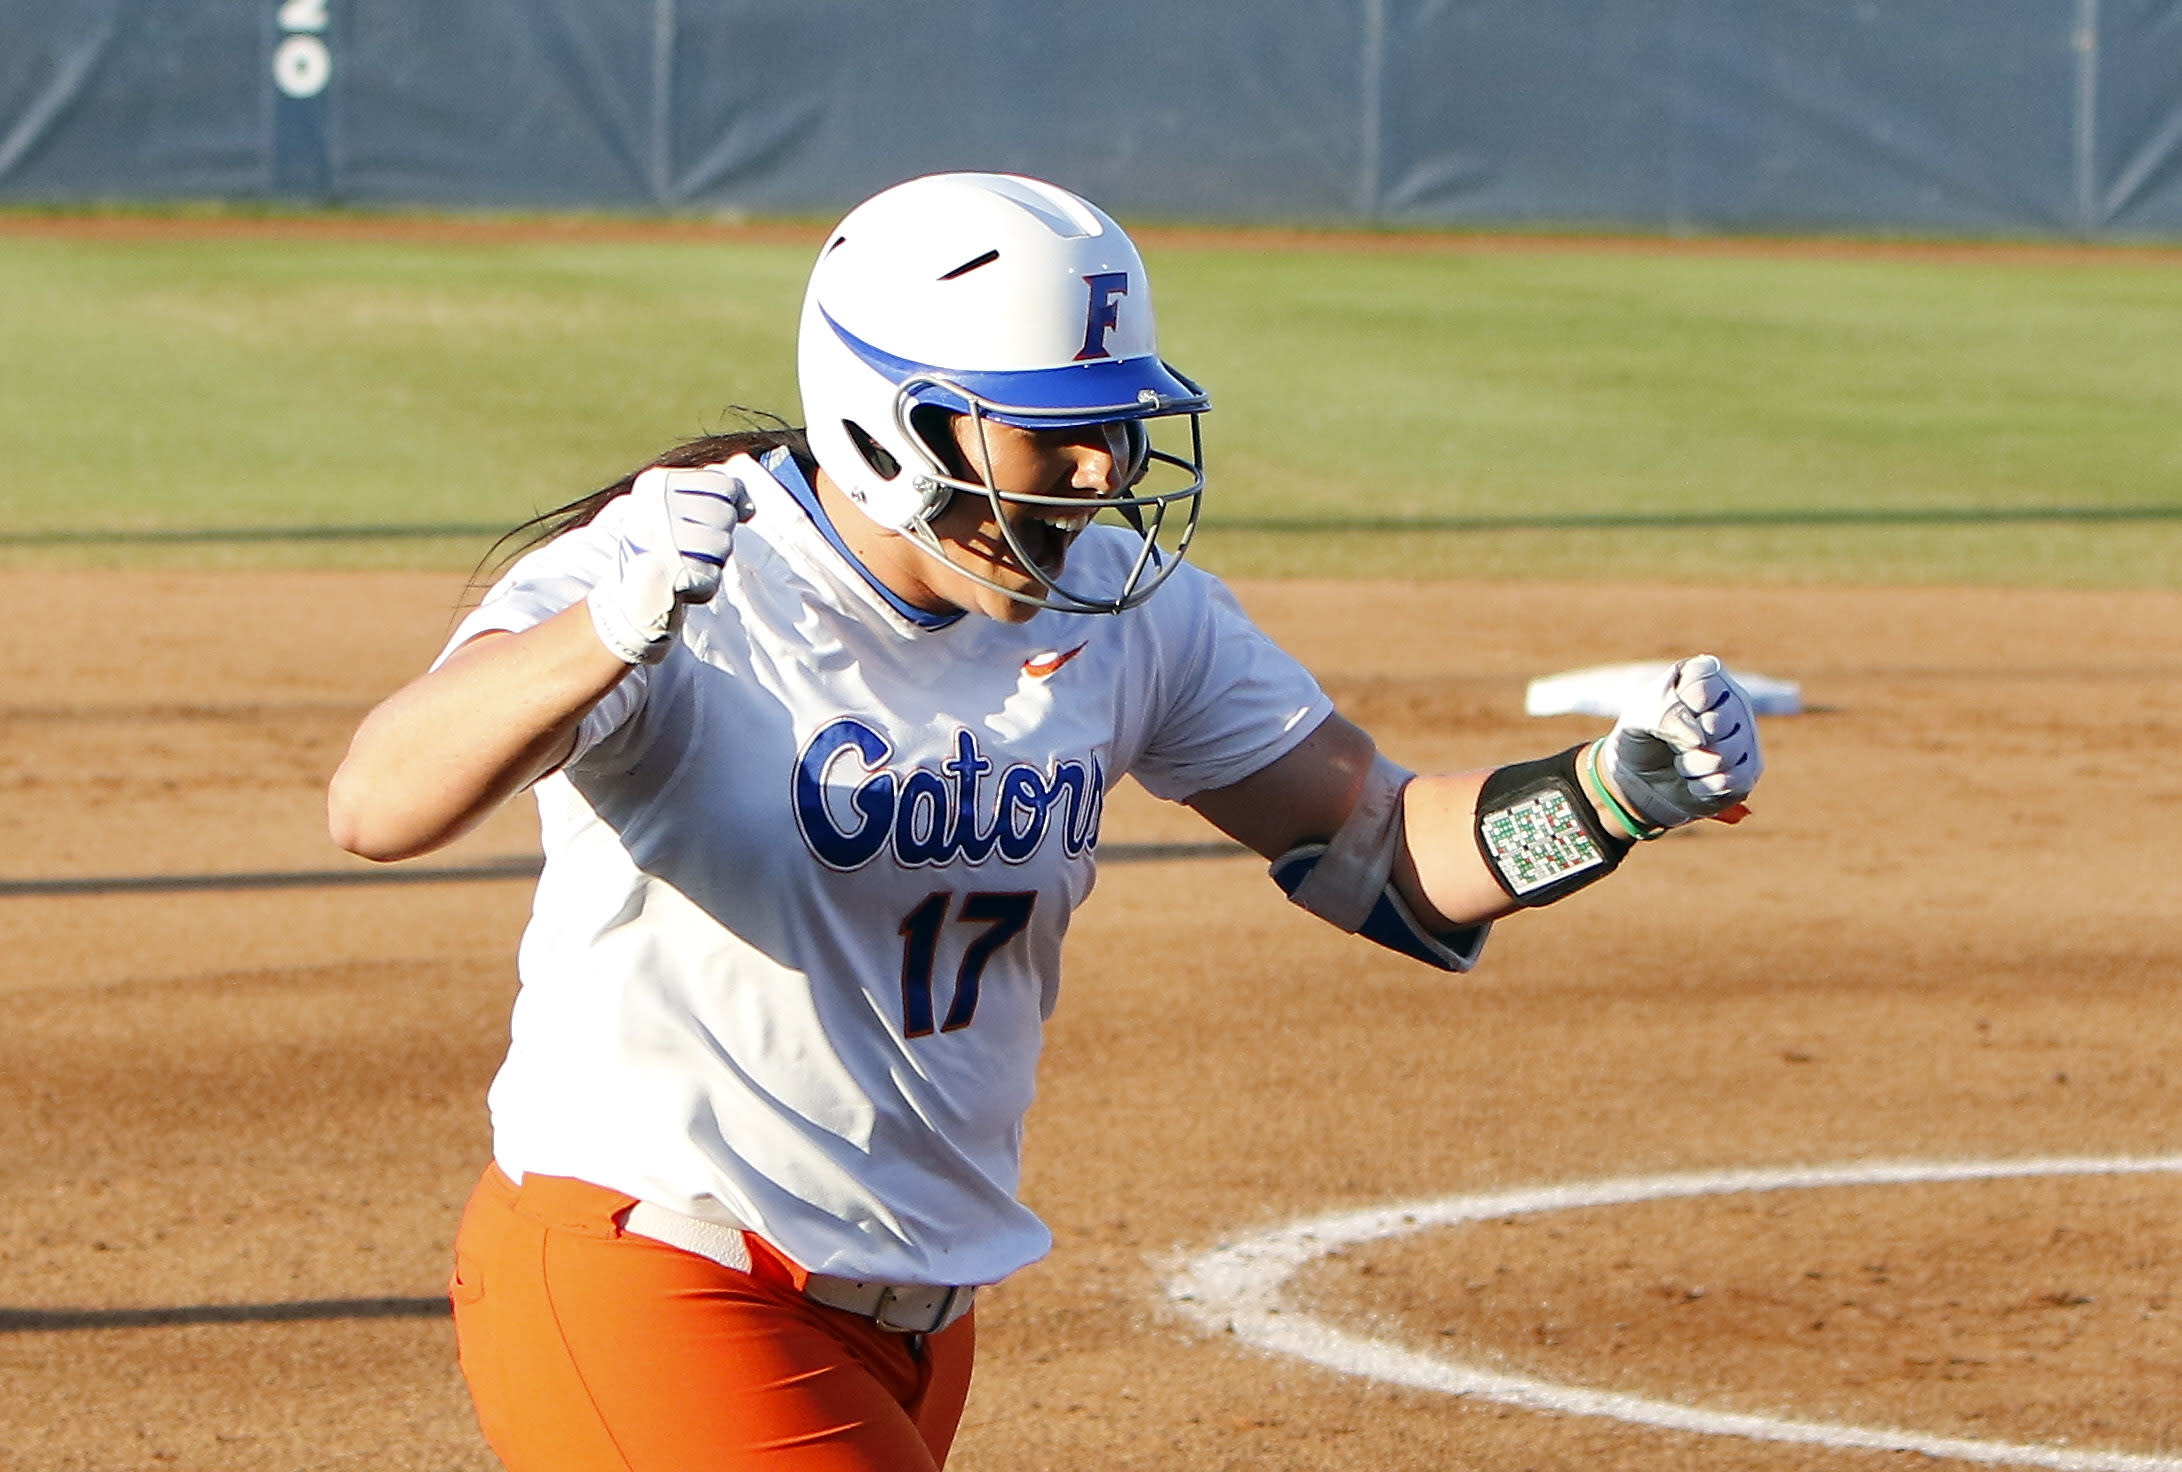 Haeger's 3 RBIs lift Florida past Michigan 3-2